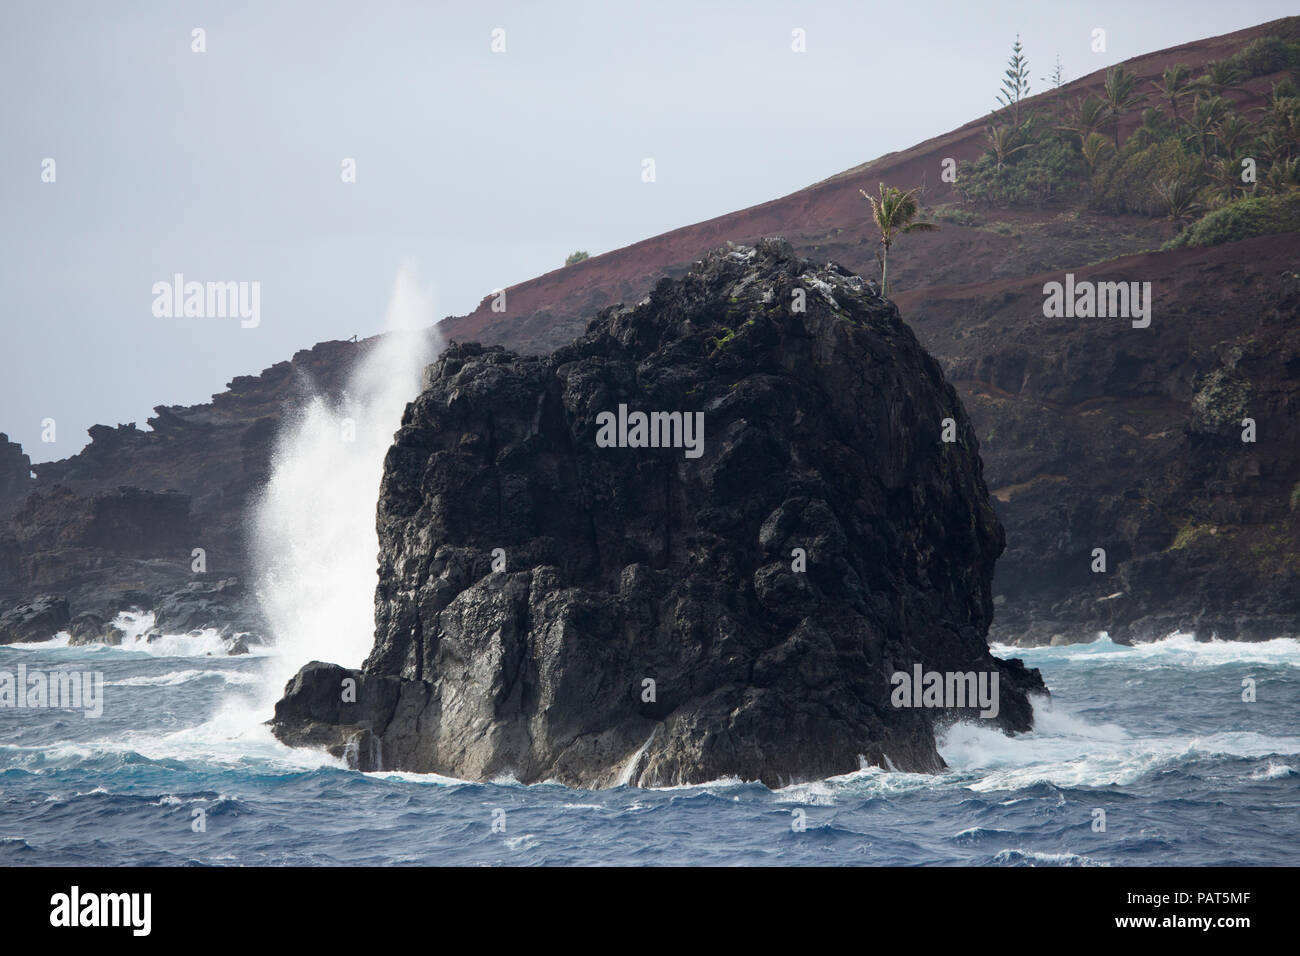 Bounty Bay, Pitcairn Islands, waves crashing into a offshore rock - Stock Image